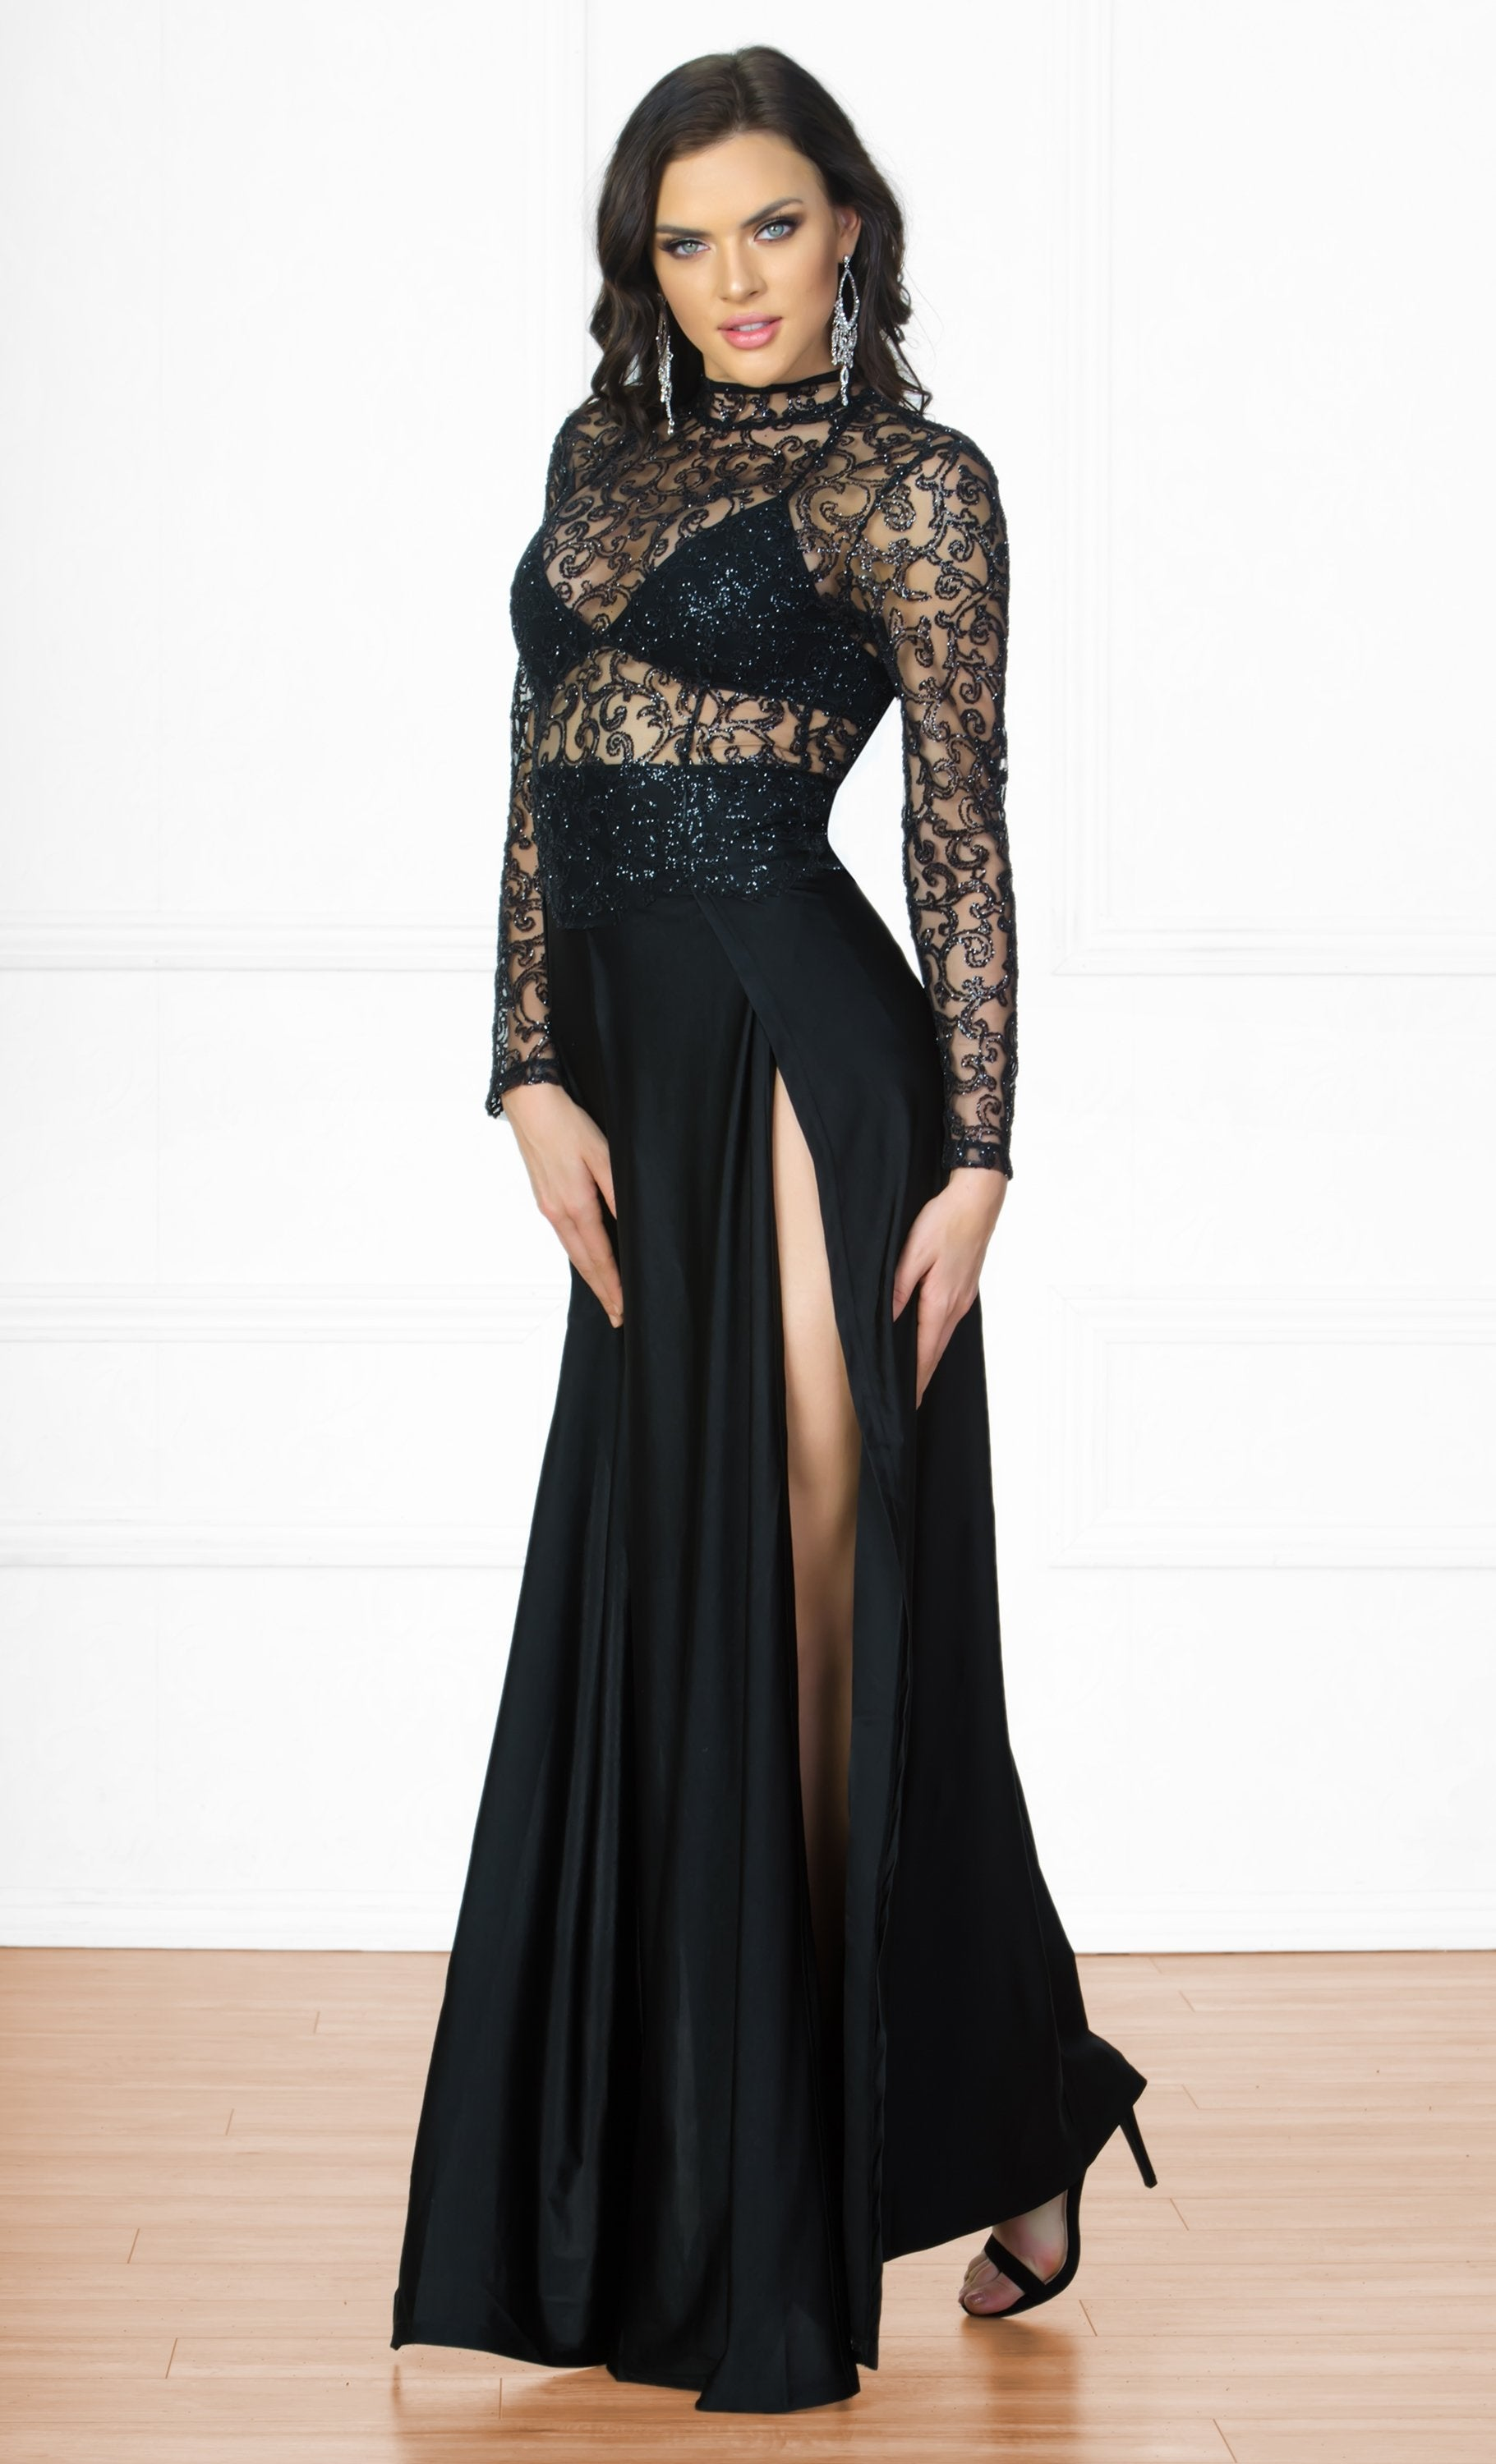 f712b5bfd54 High Drama Black Glitter Sheer Mesh Long Sleeve Mock Neck Cut Out Back  Double Slit Maxi